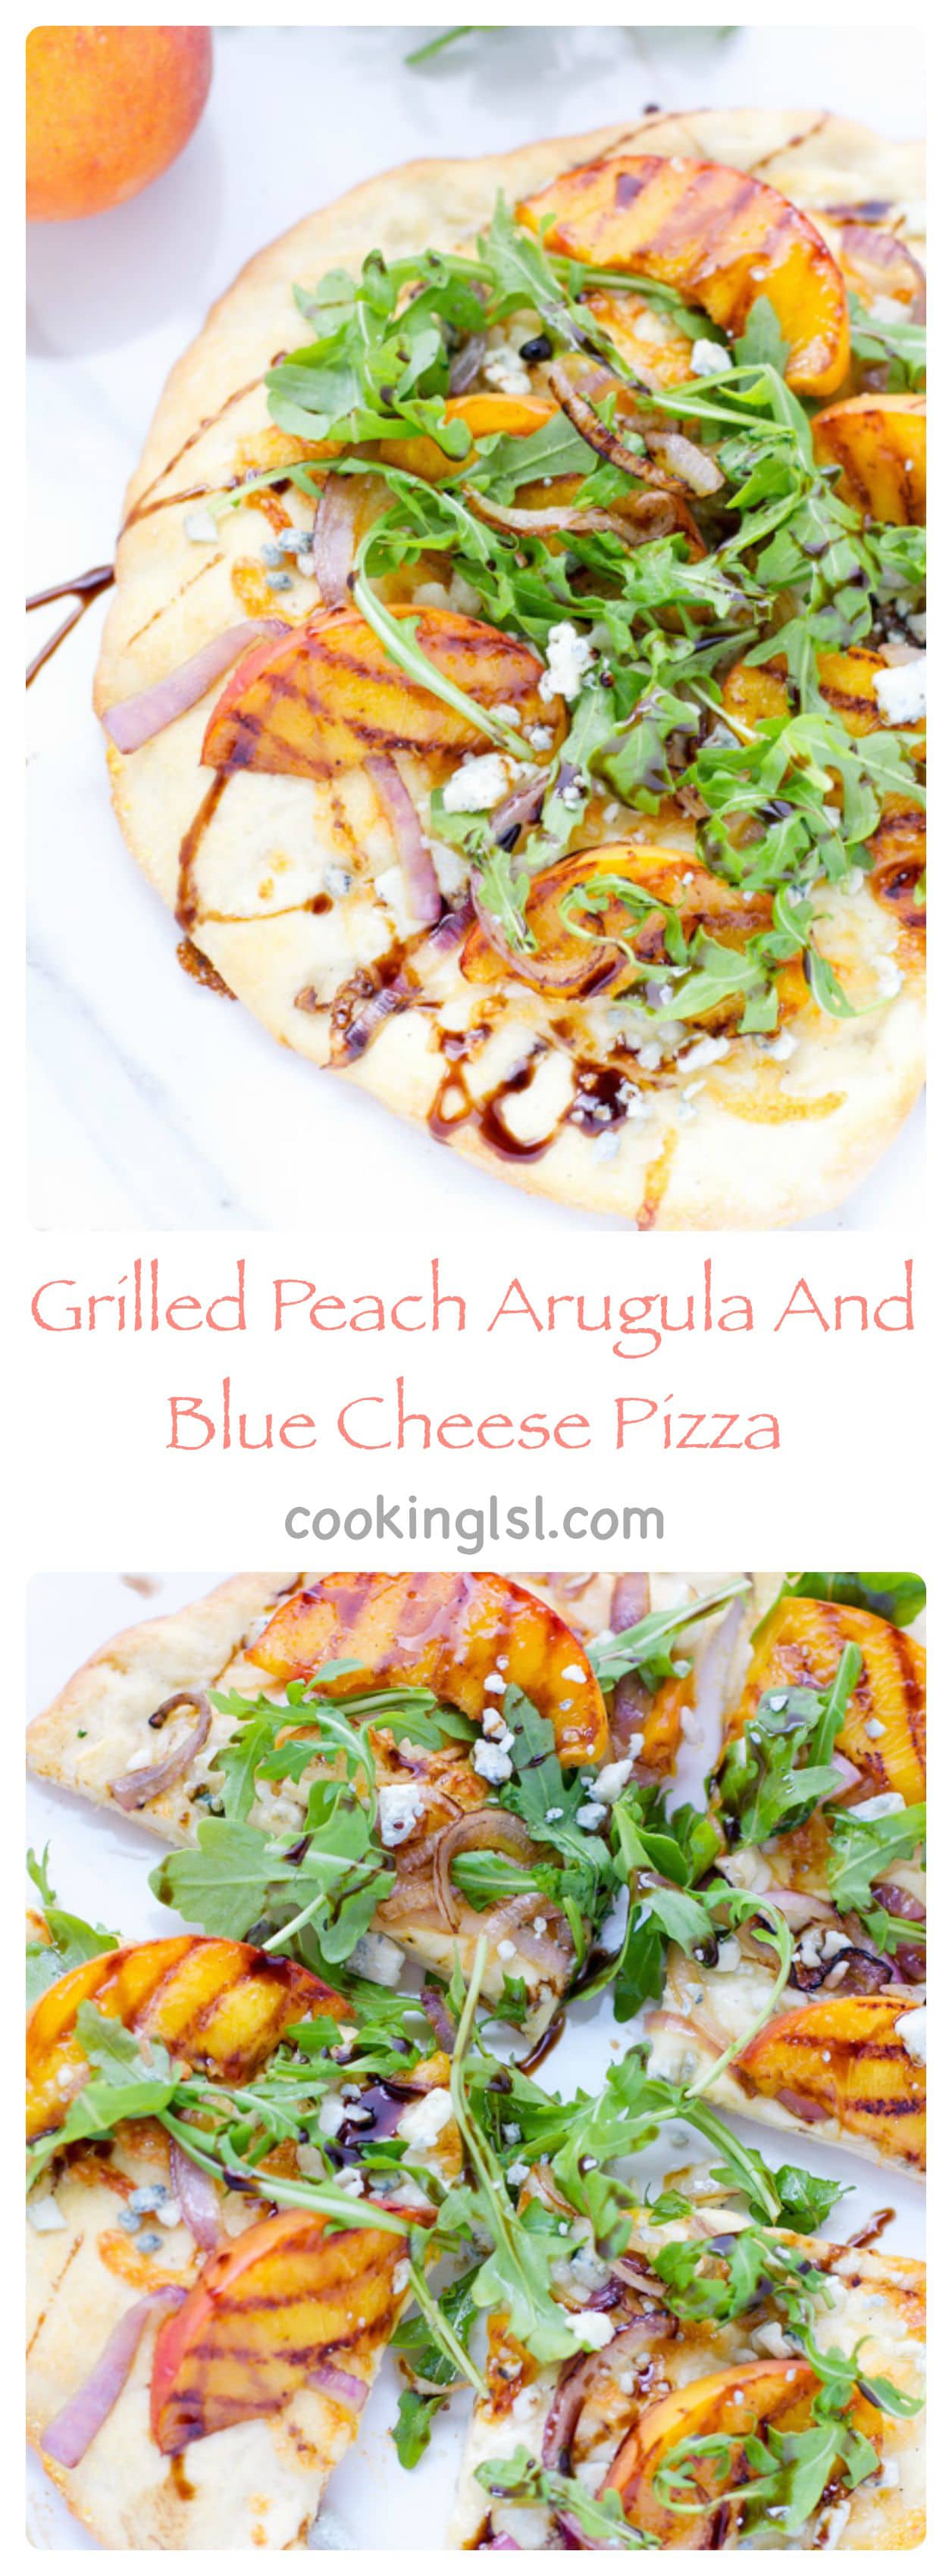 grilled-peach-arugula-blue-cheese-pizza